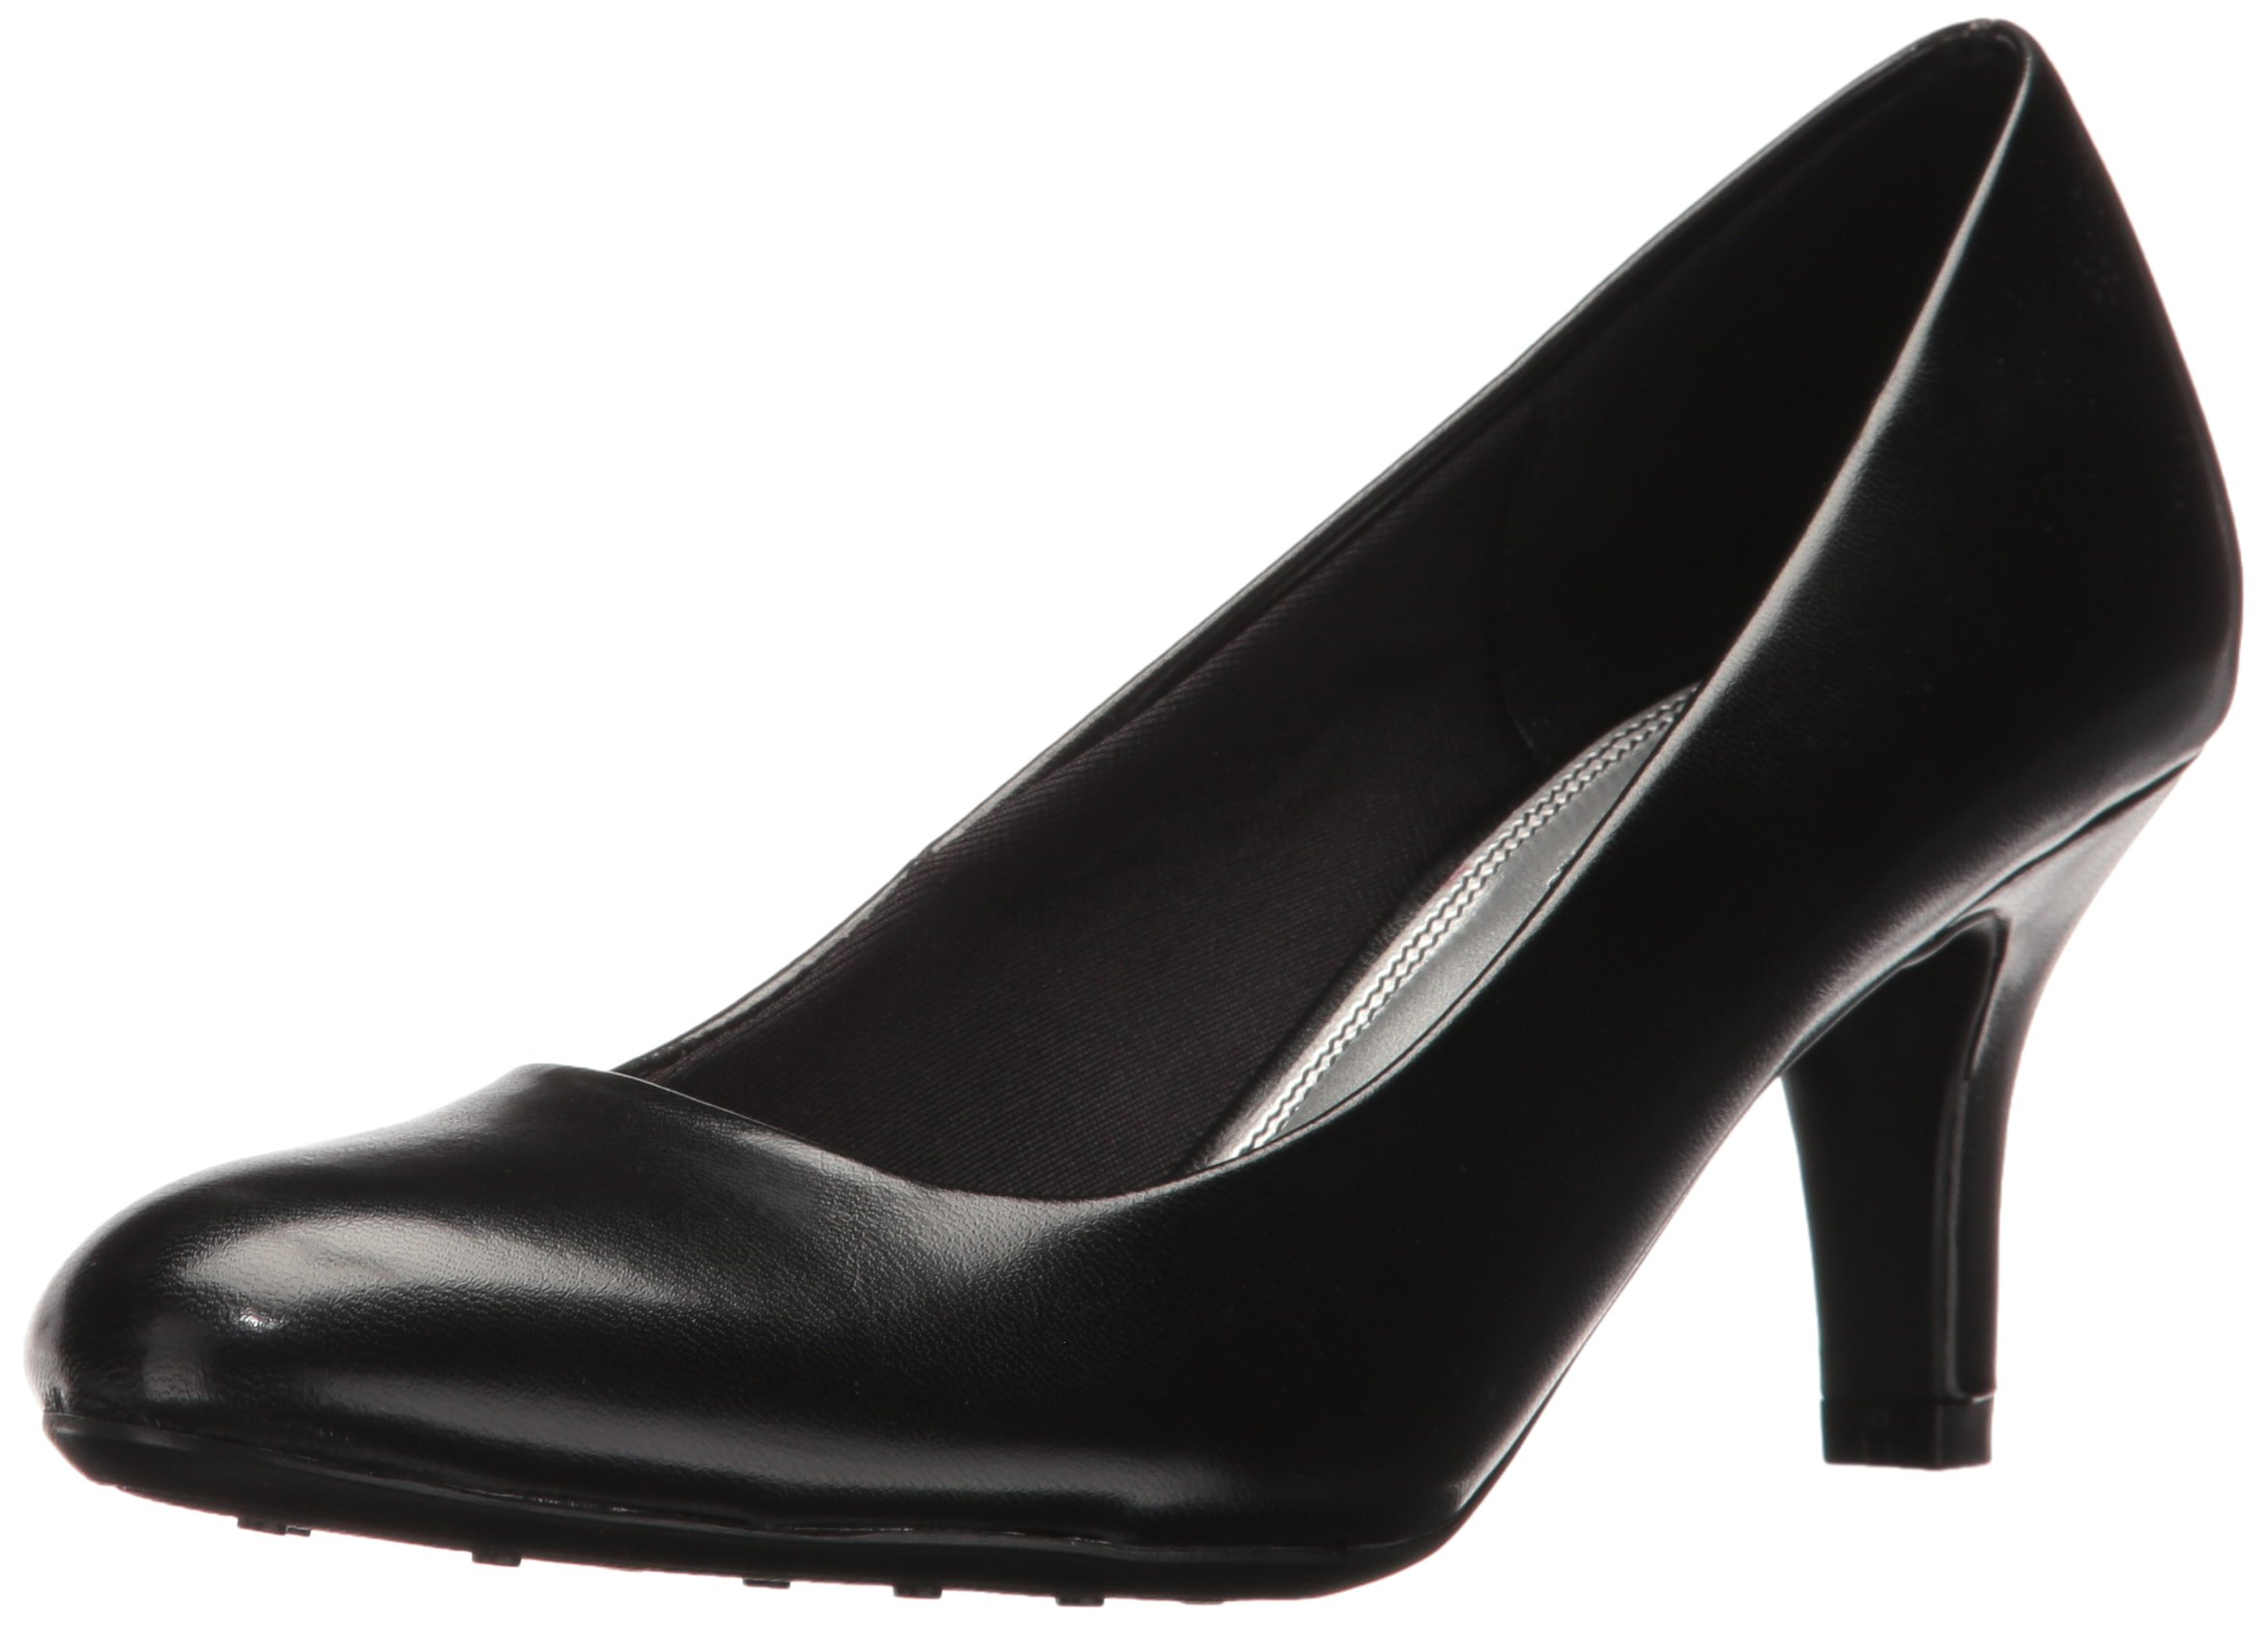 LifeStride Women's Parigi Pump, Black, 7.5 M US